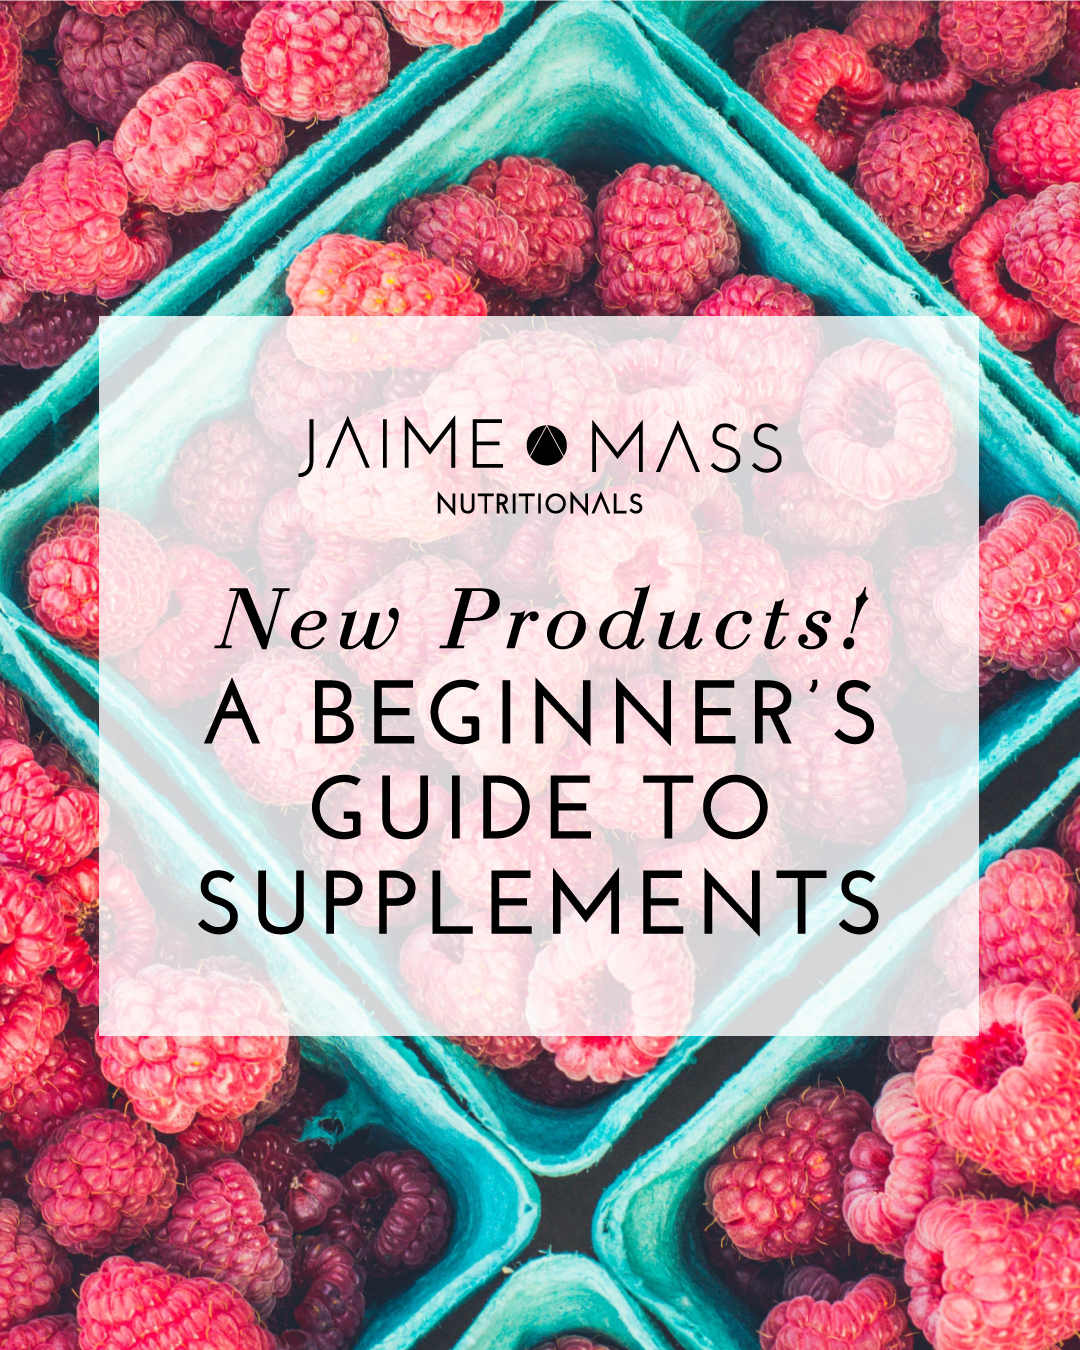 New Products! A Beginner's Guide to Supplements